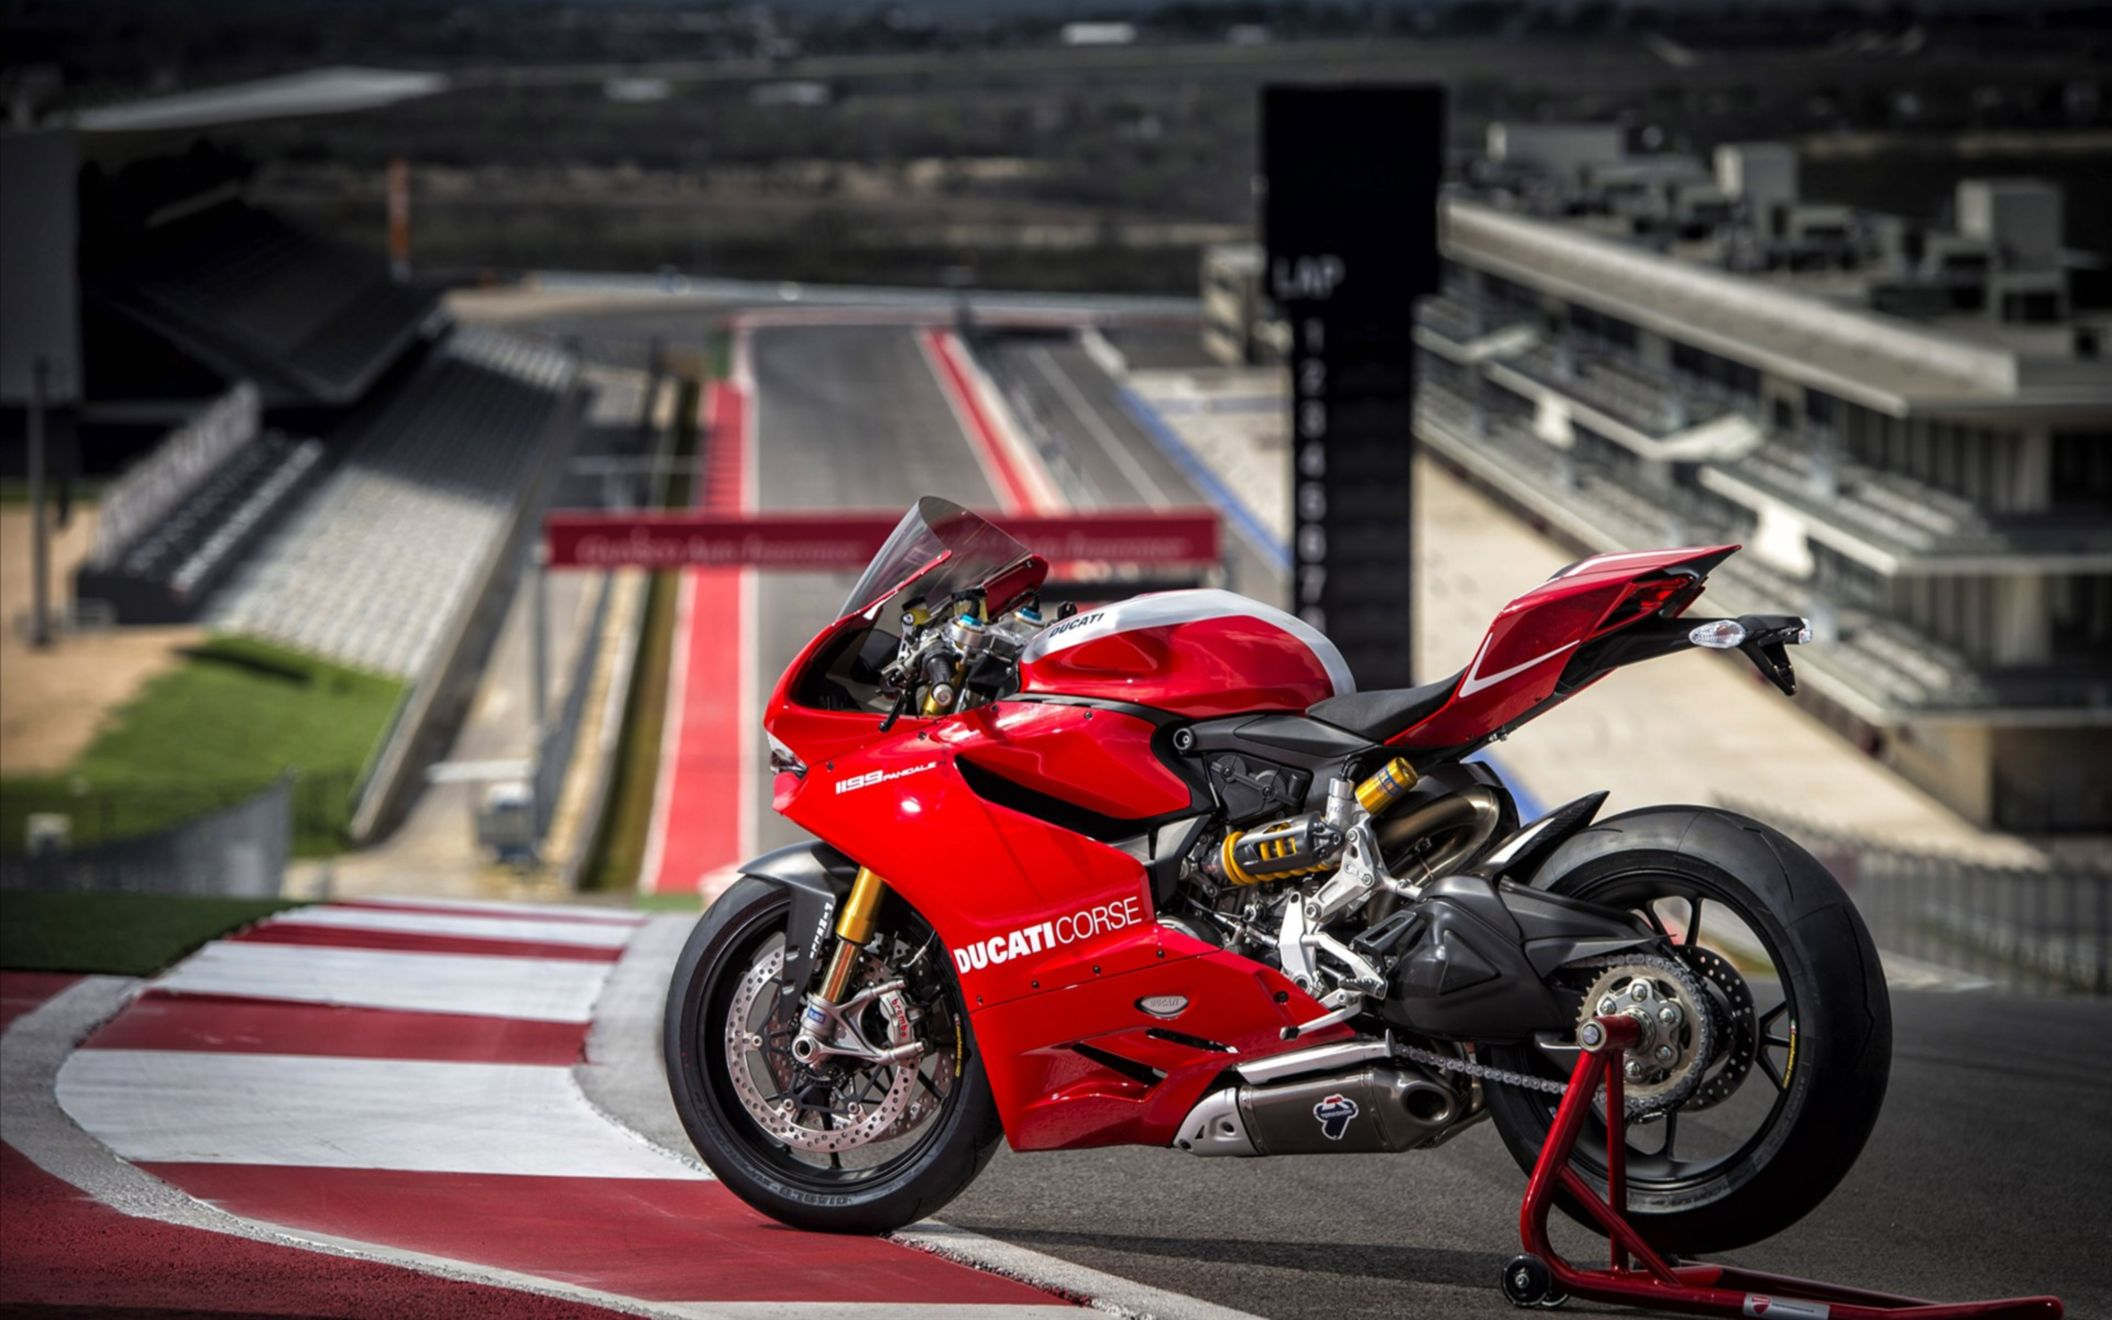 Download free HD 2013 Ducati Superbike 1199 Panigale R Wide Wallpaper, image